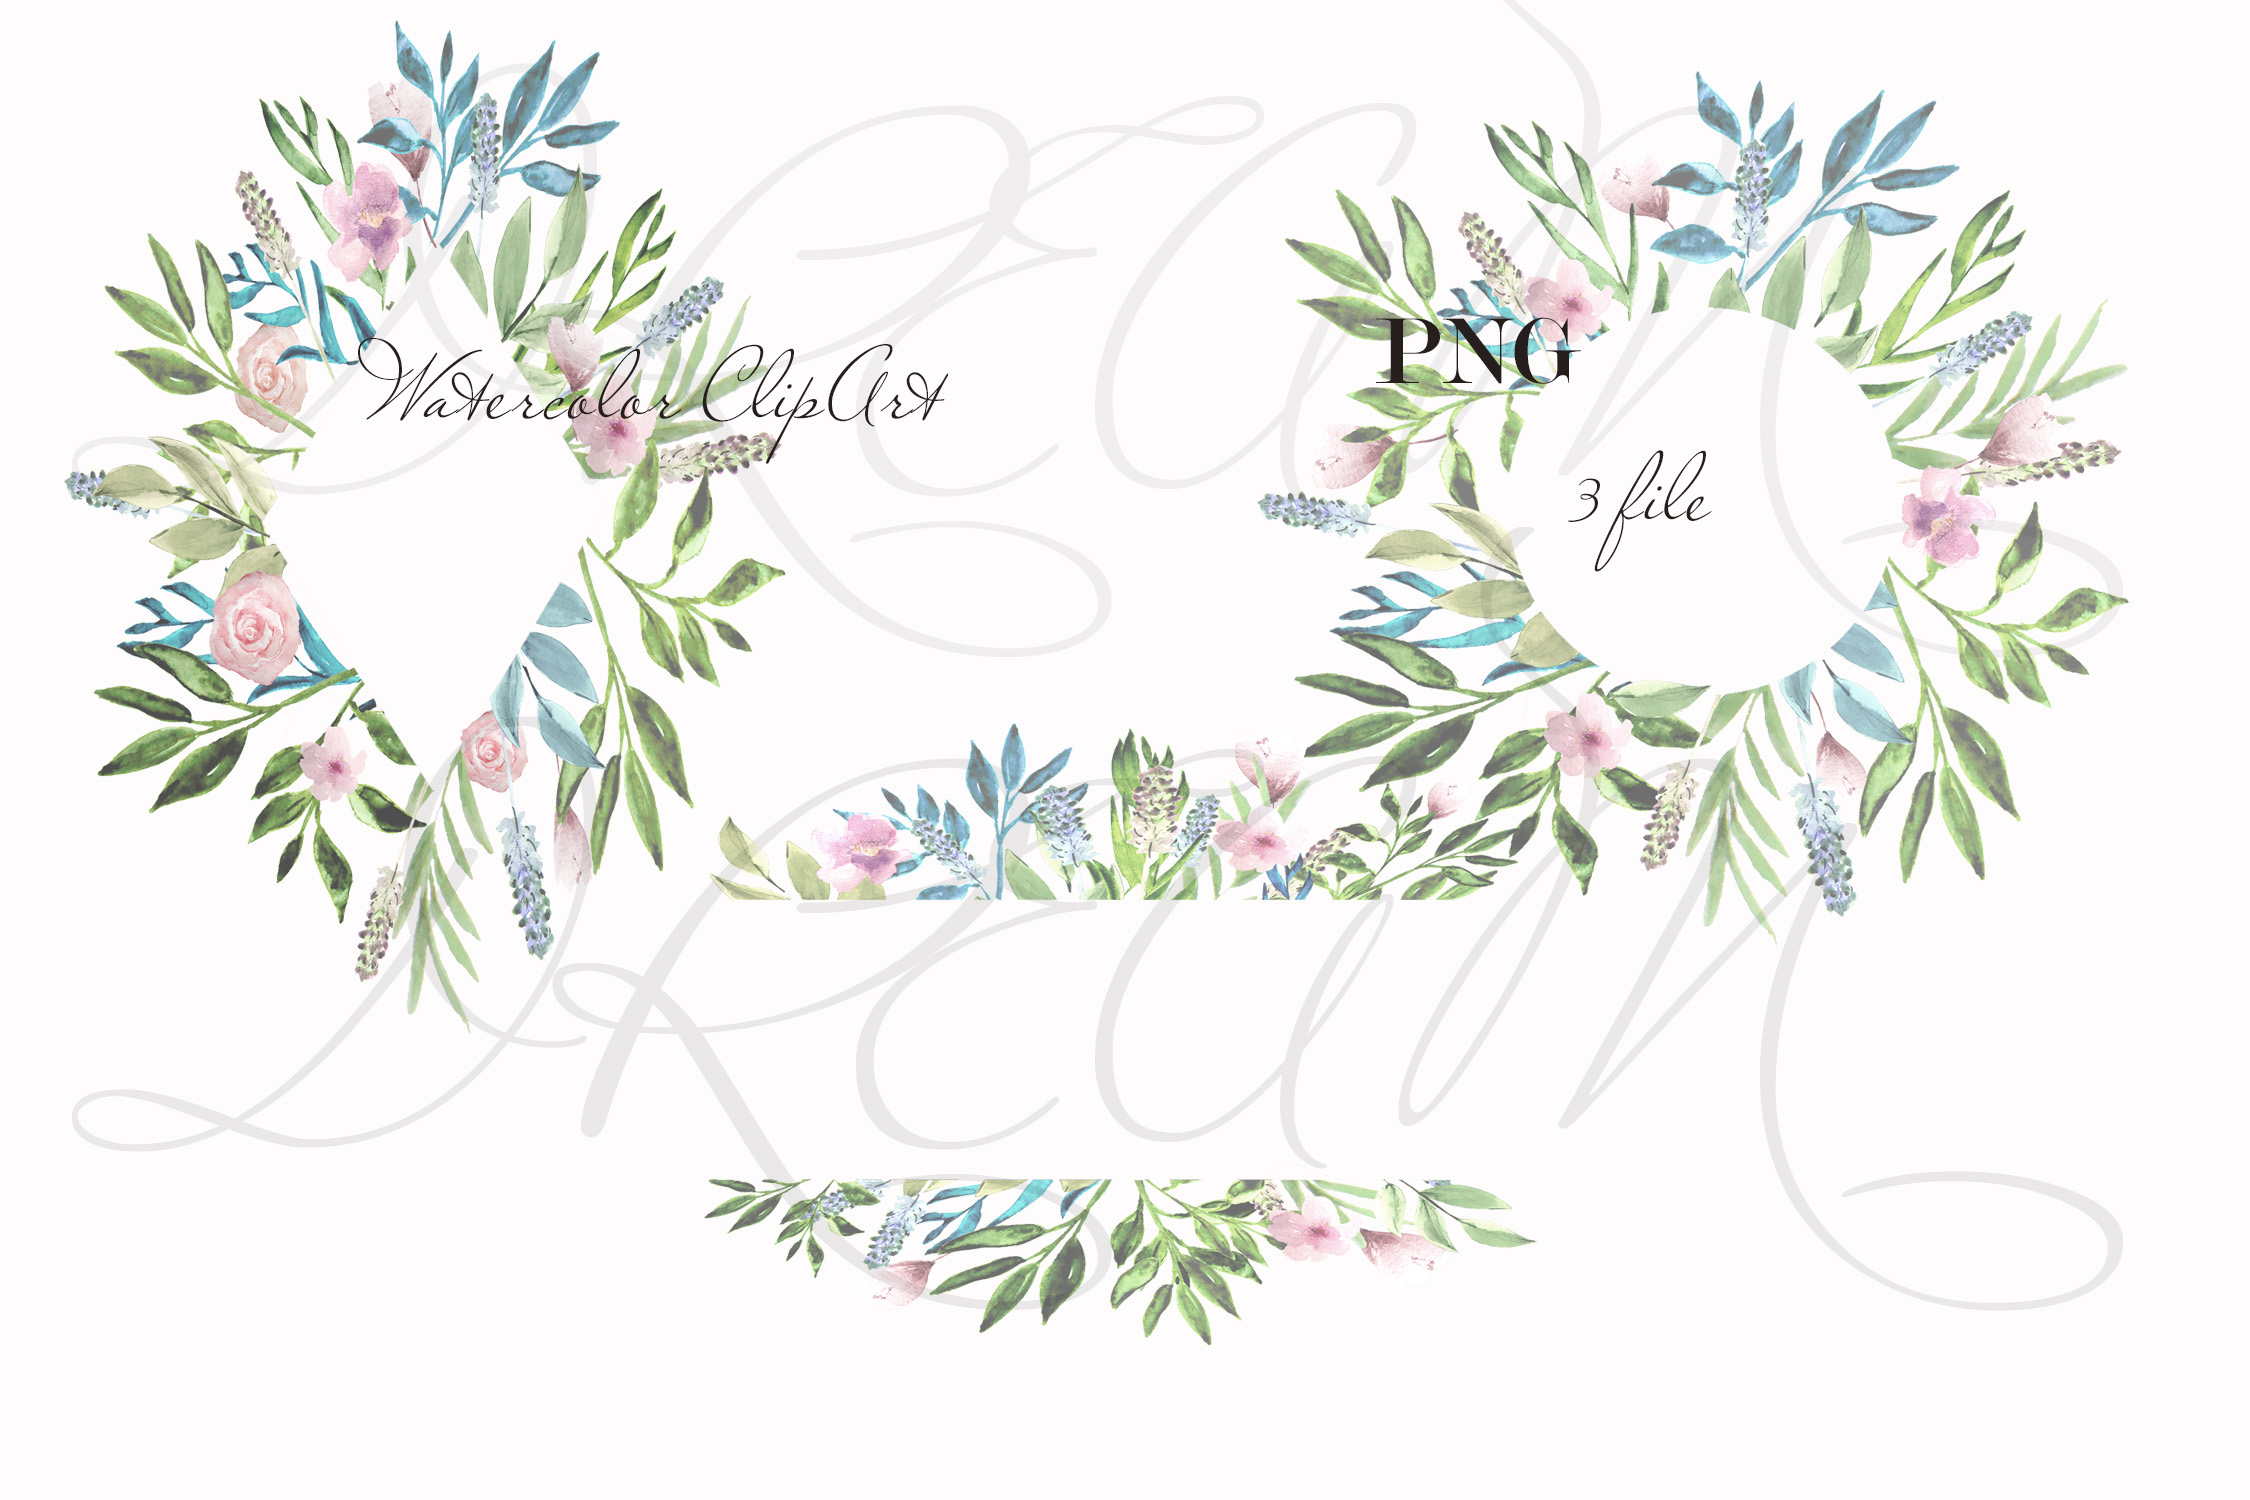 Watercolor greenery clipart example image 2